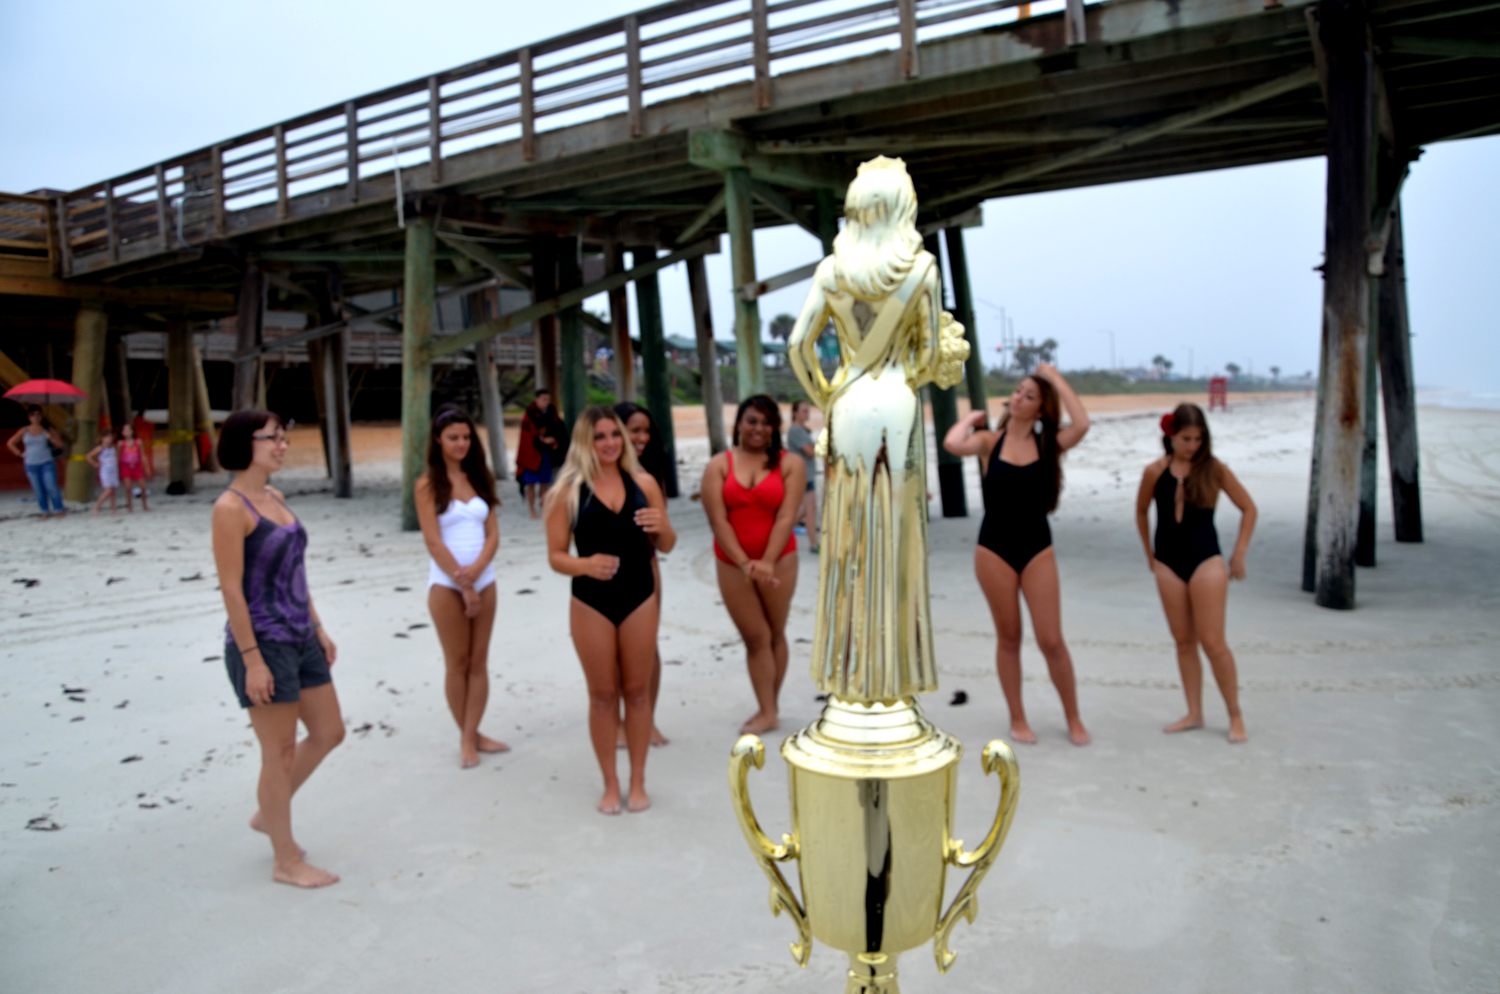 miss flagler county pageant girls 16-23